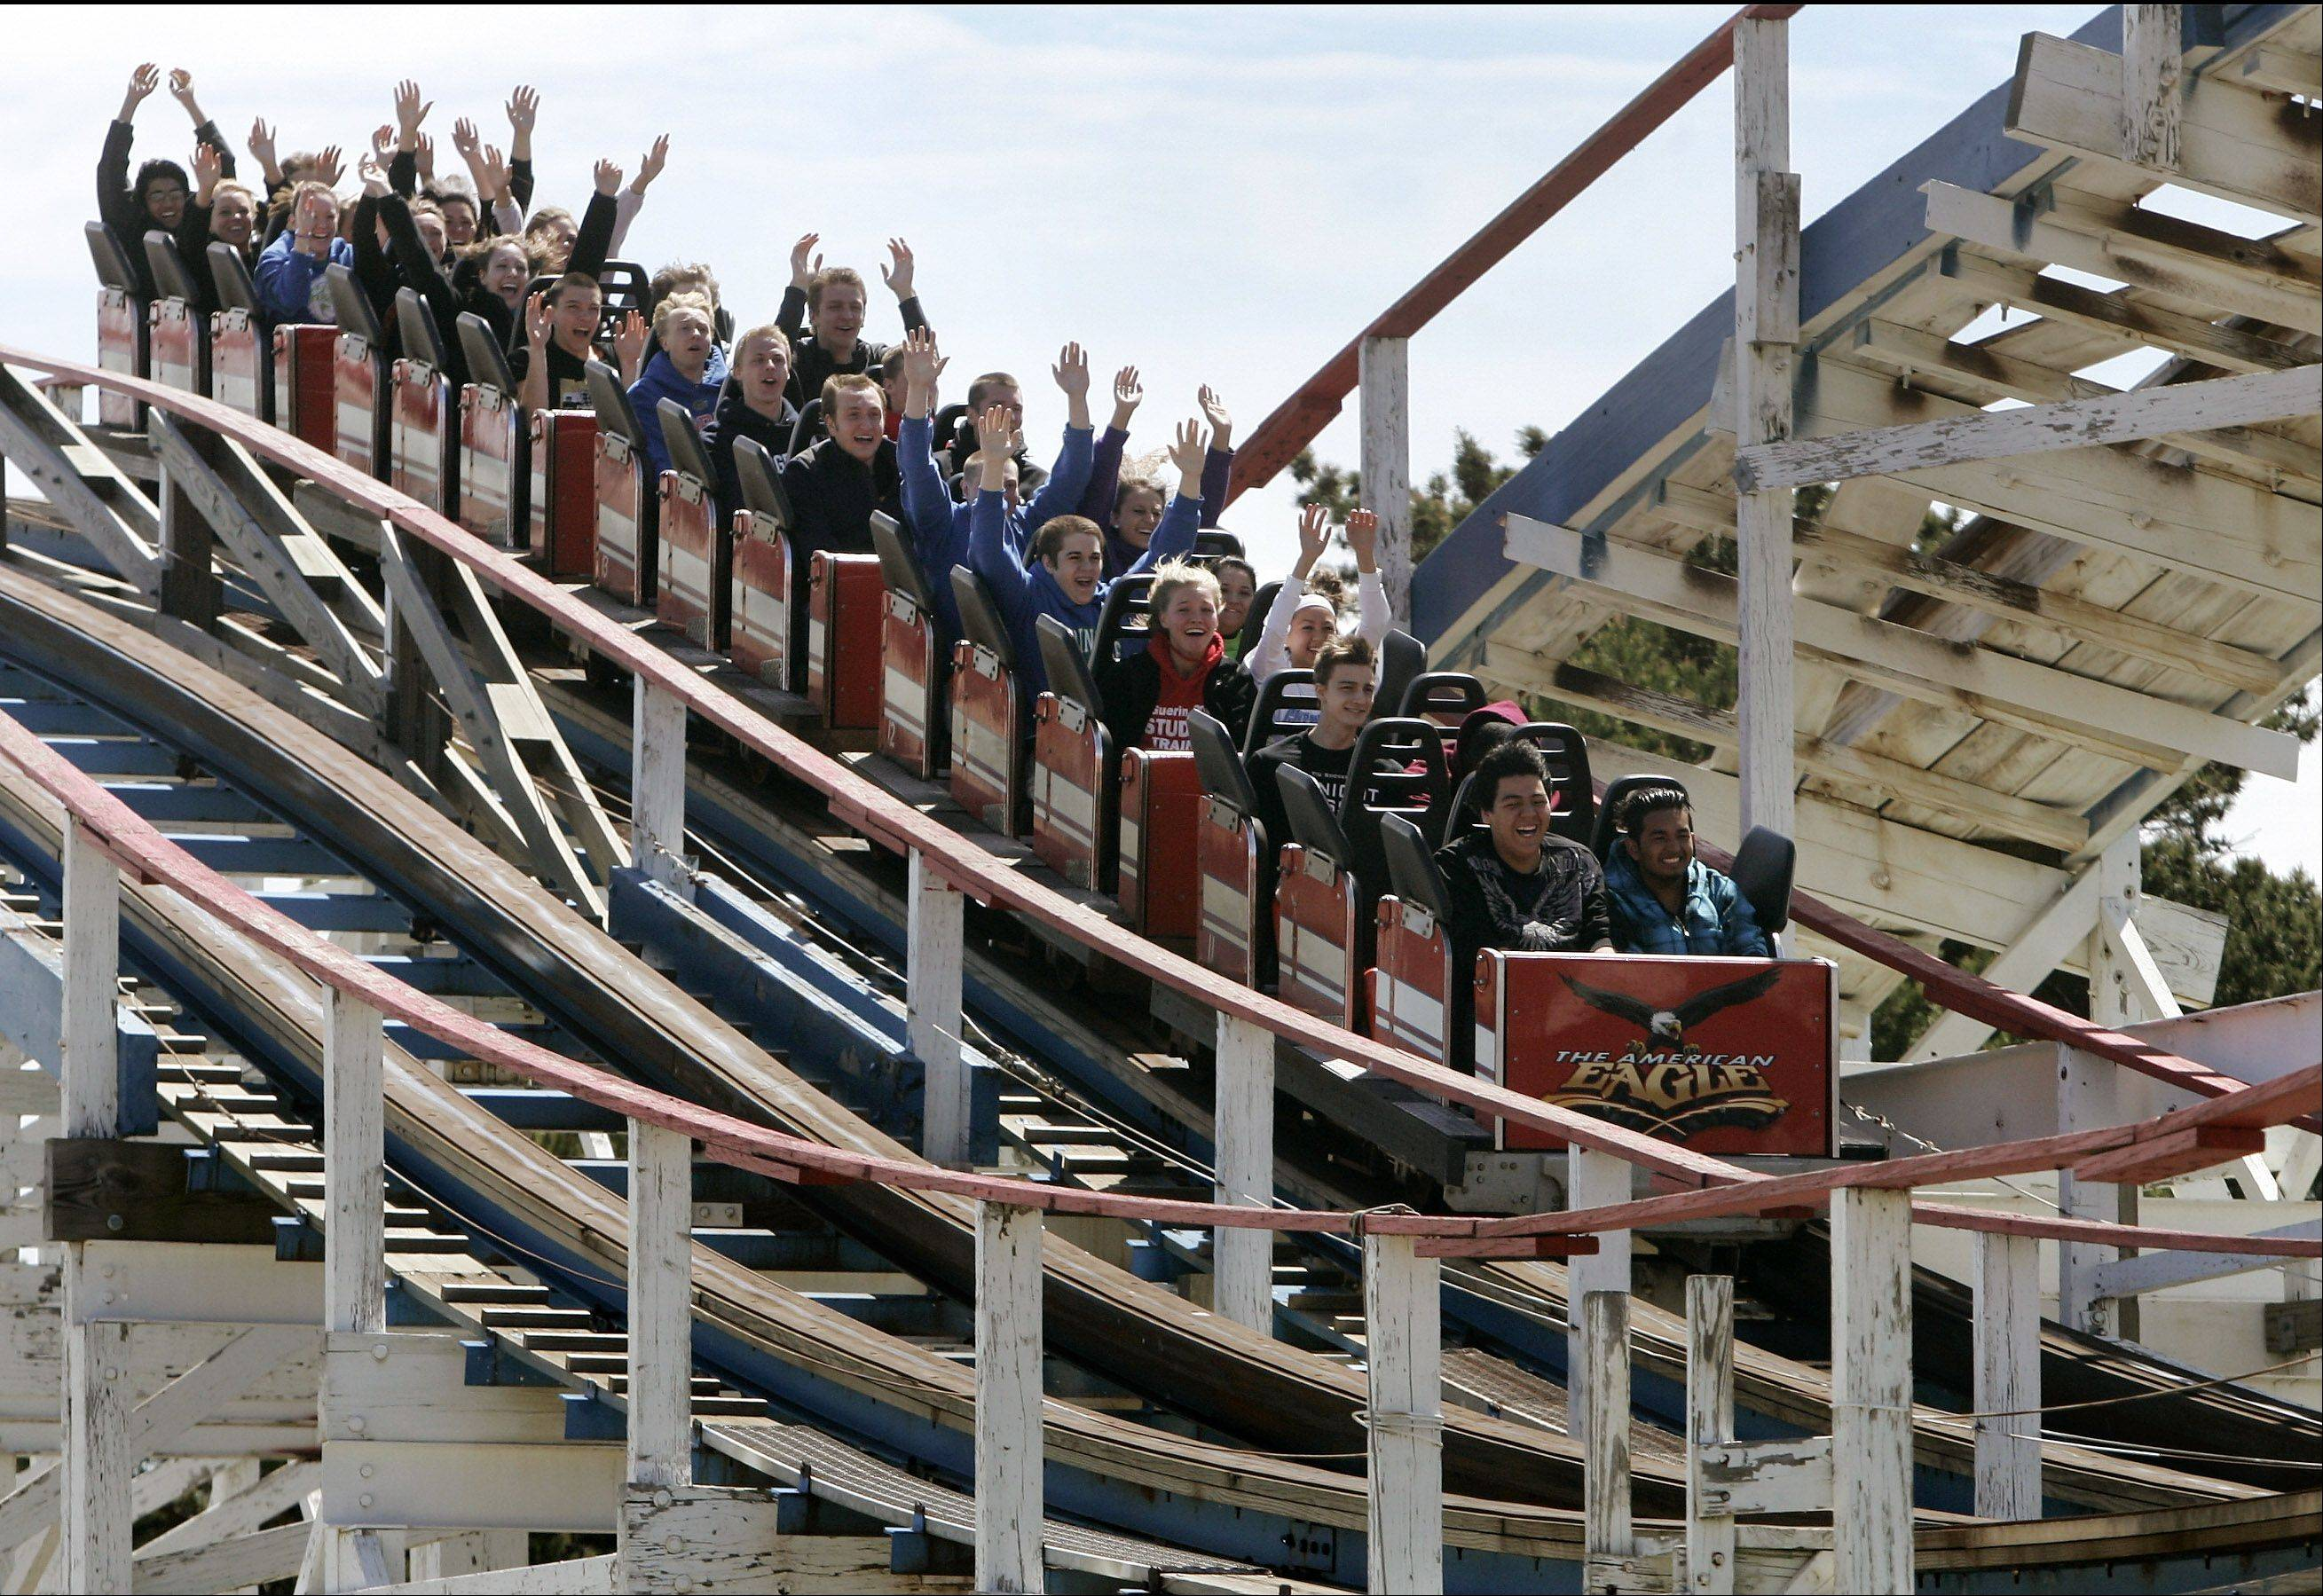 American Eagle may receive competition on the wooden roller coaster front at Six Flags Great America in Gurnee. The village's advisory planning and zoning board is expected to hear a proposal for a wooden coaster at a meeting Wednesday evening.